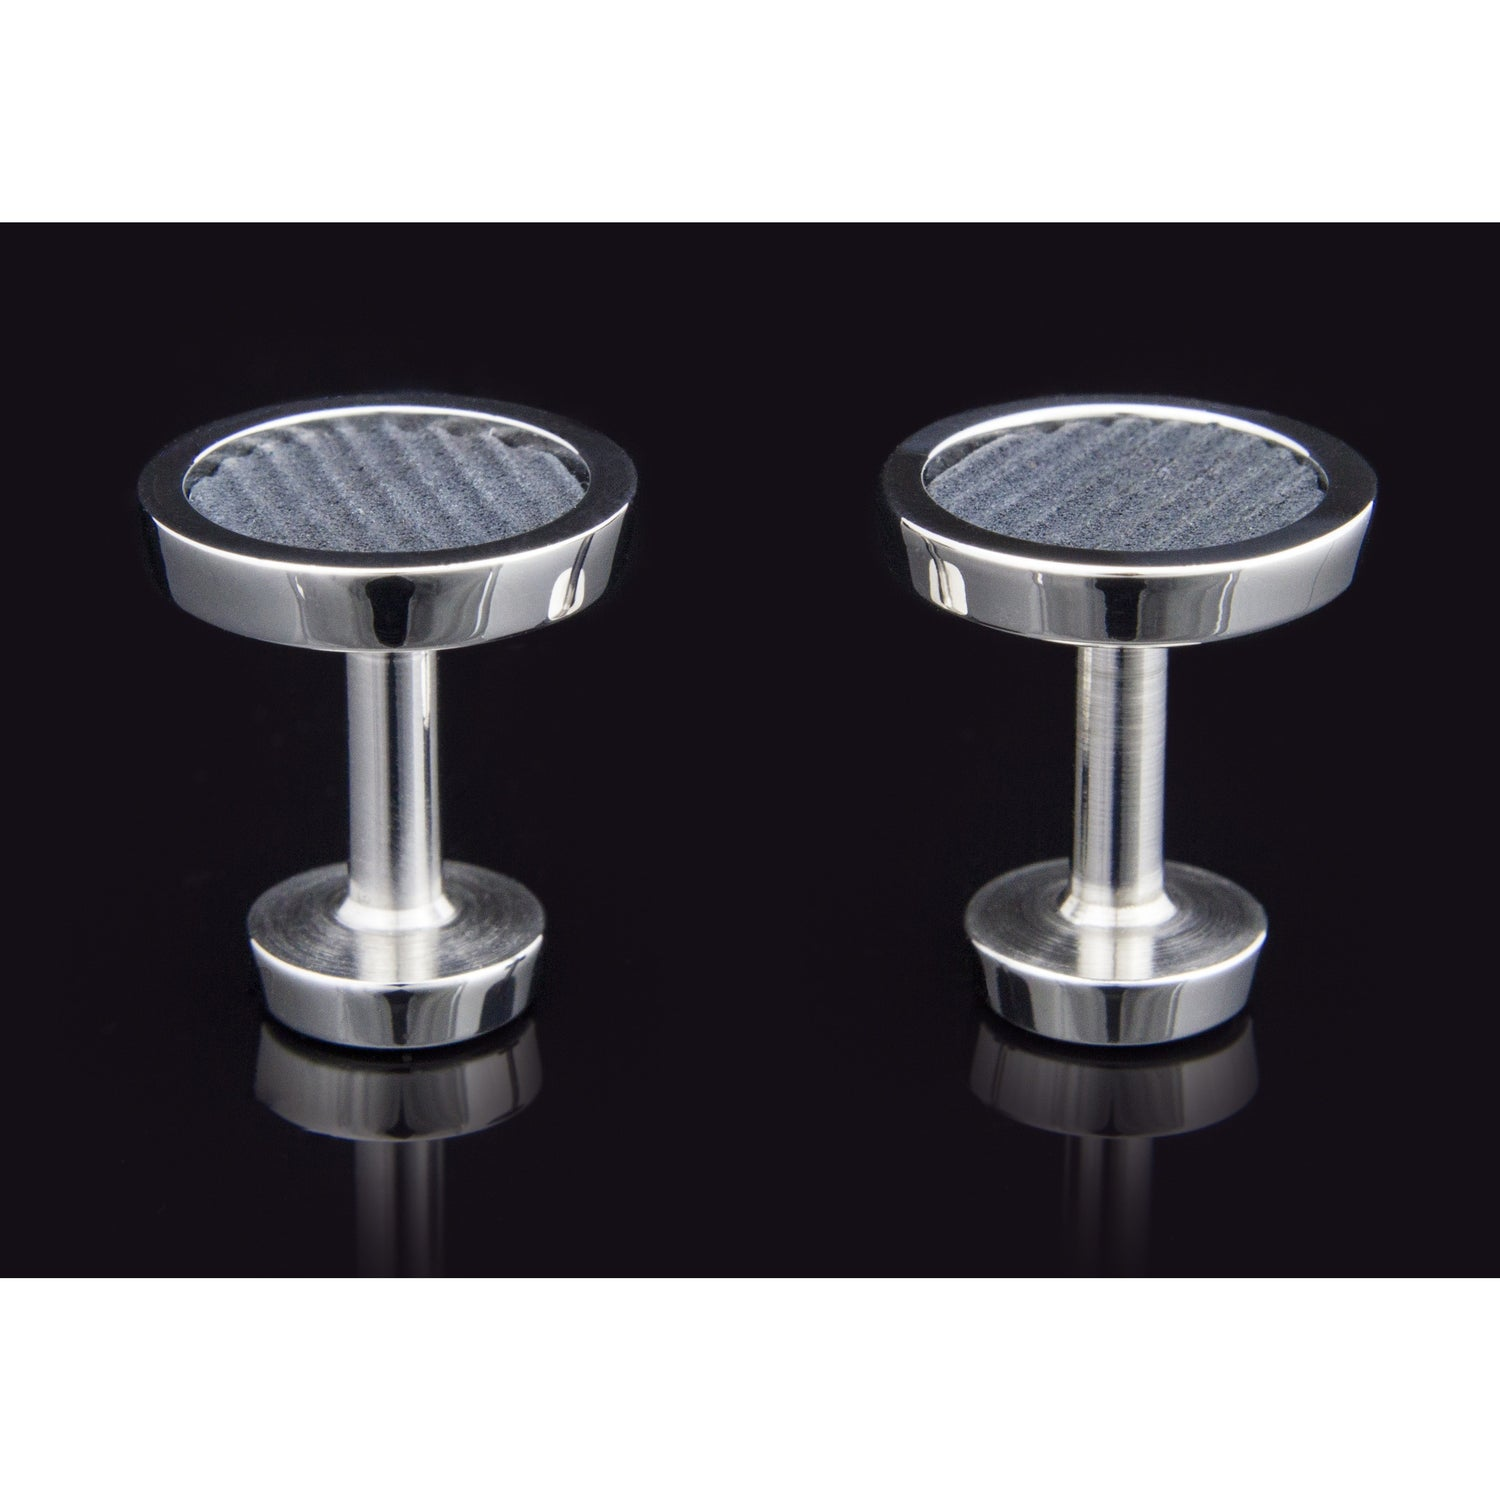 Lockstone One Range Stainless Steel Cufflinks - Tittup Unique Aromatherapy & Jewellery